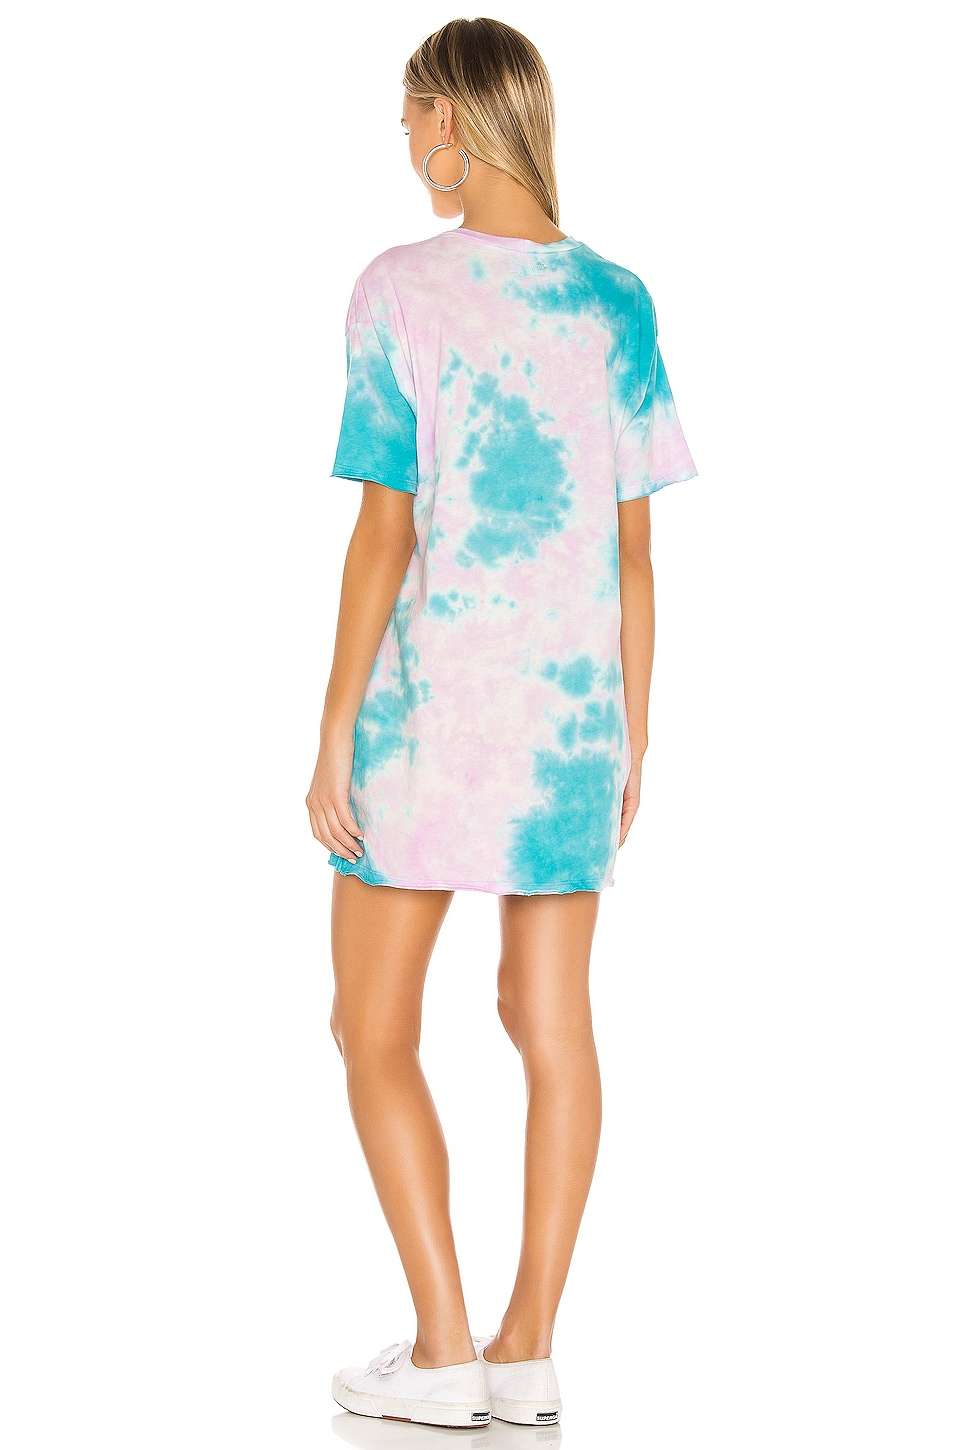 Burman Oversized T-Shirt Dress, view 3, click to view large image.